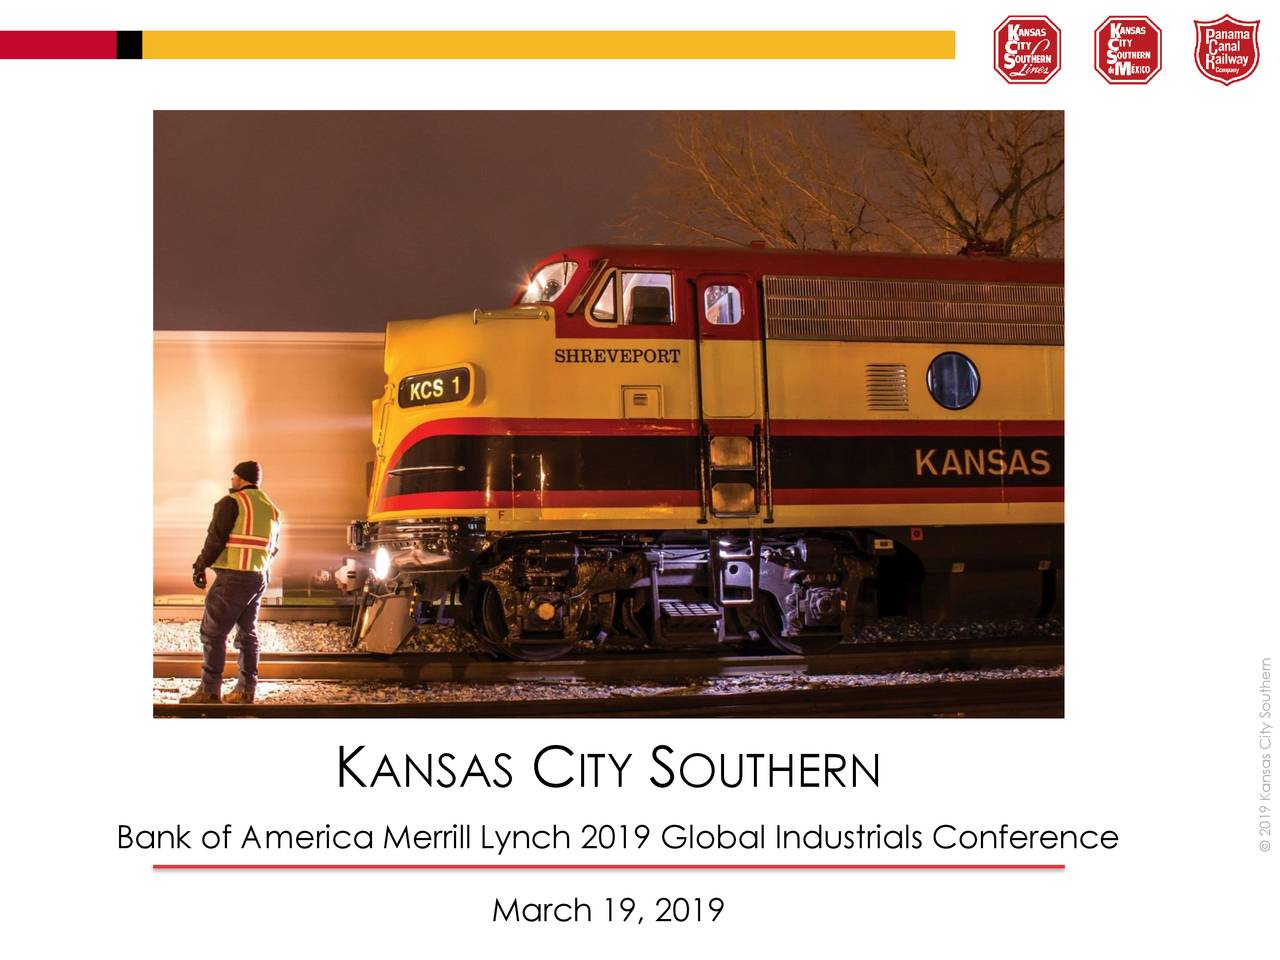 Bank of America Merrill Lynch 2019 Global Industrials Conference © 2019 Kansas City Southern March 19, 2019